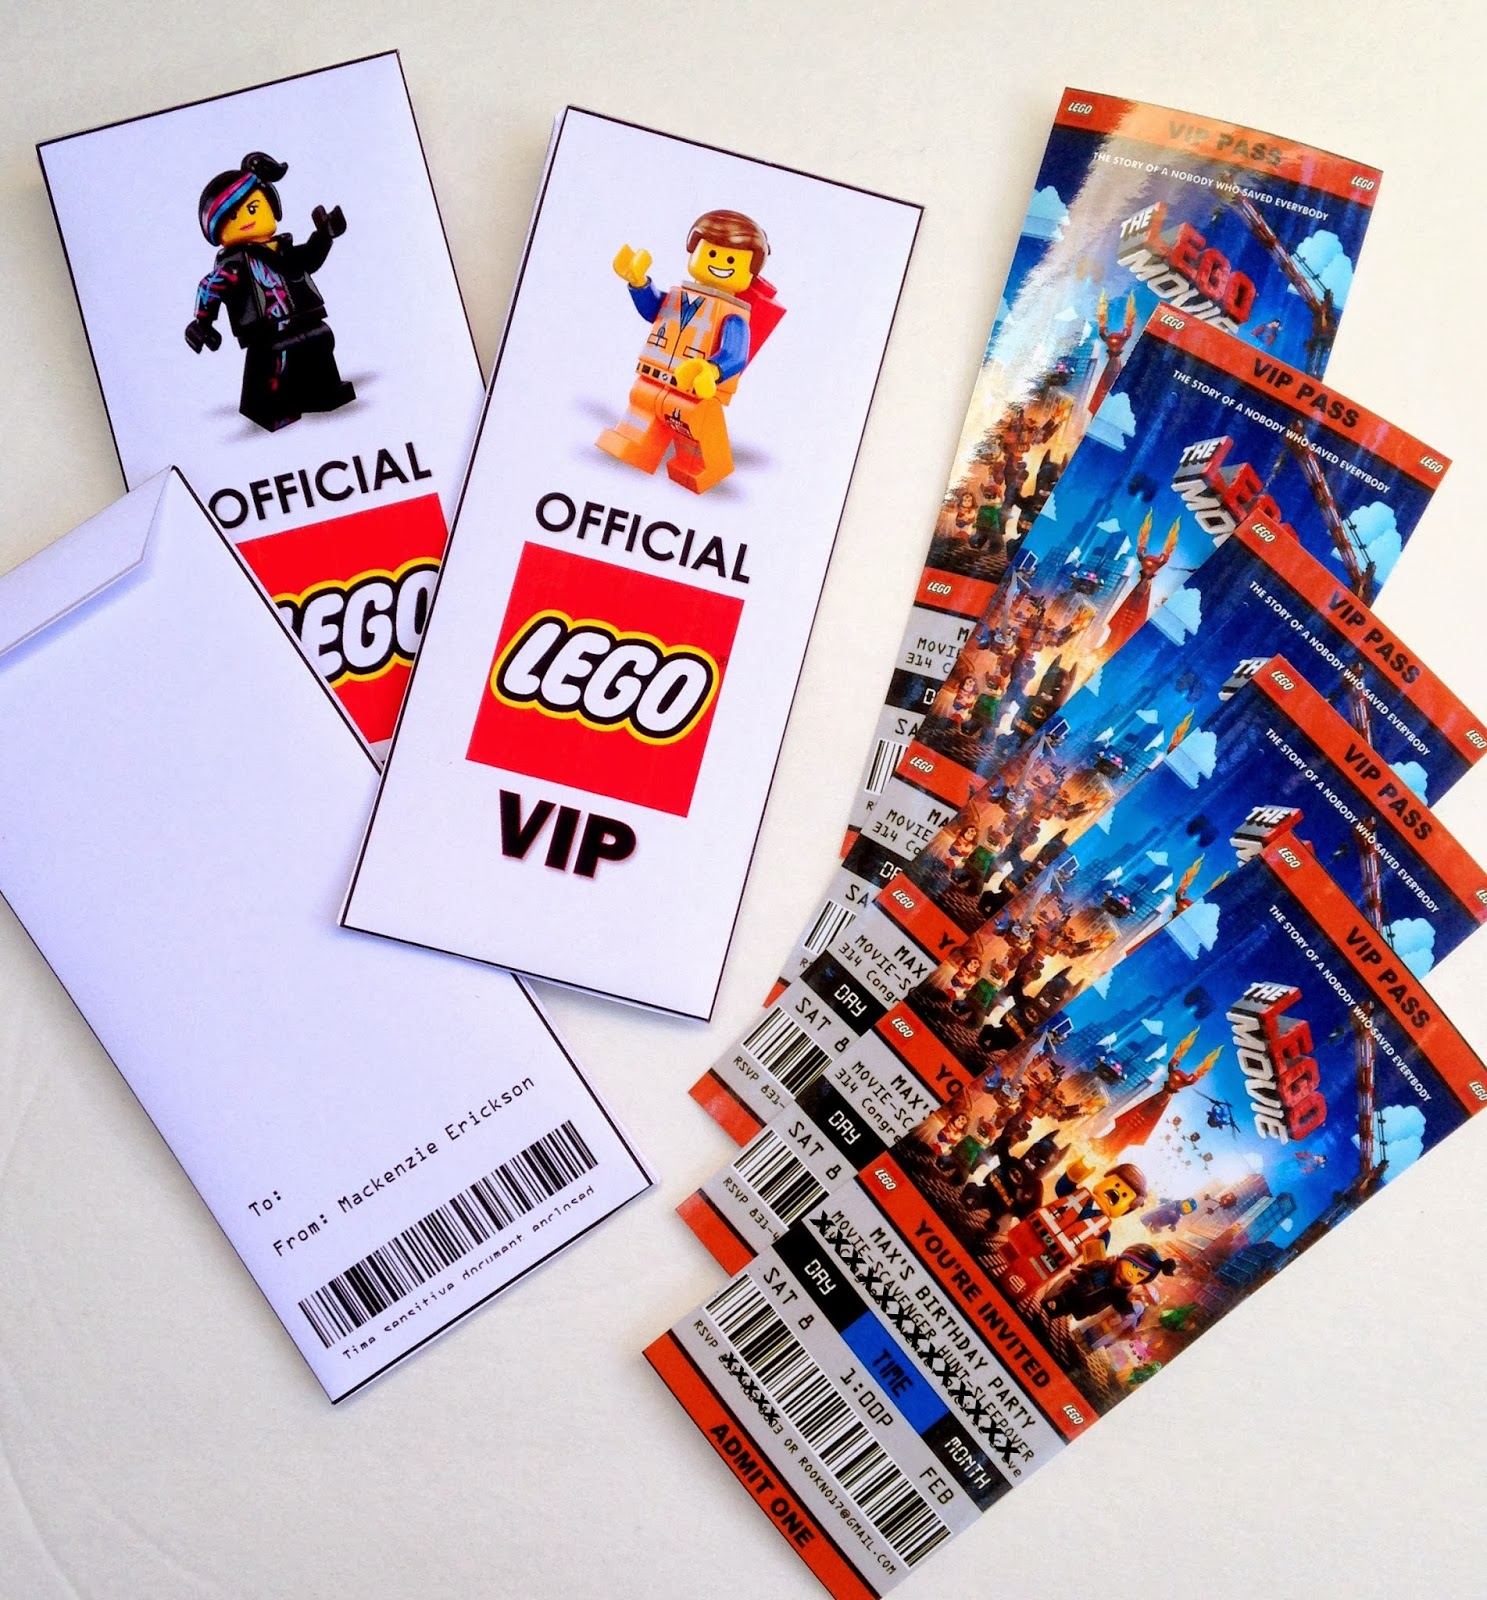 lego+movie+birthday+party+invitations+ticket+style+printable 001 jennuine by rook no 17* free printable ticket style party,Lego Party Invitation Ideas